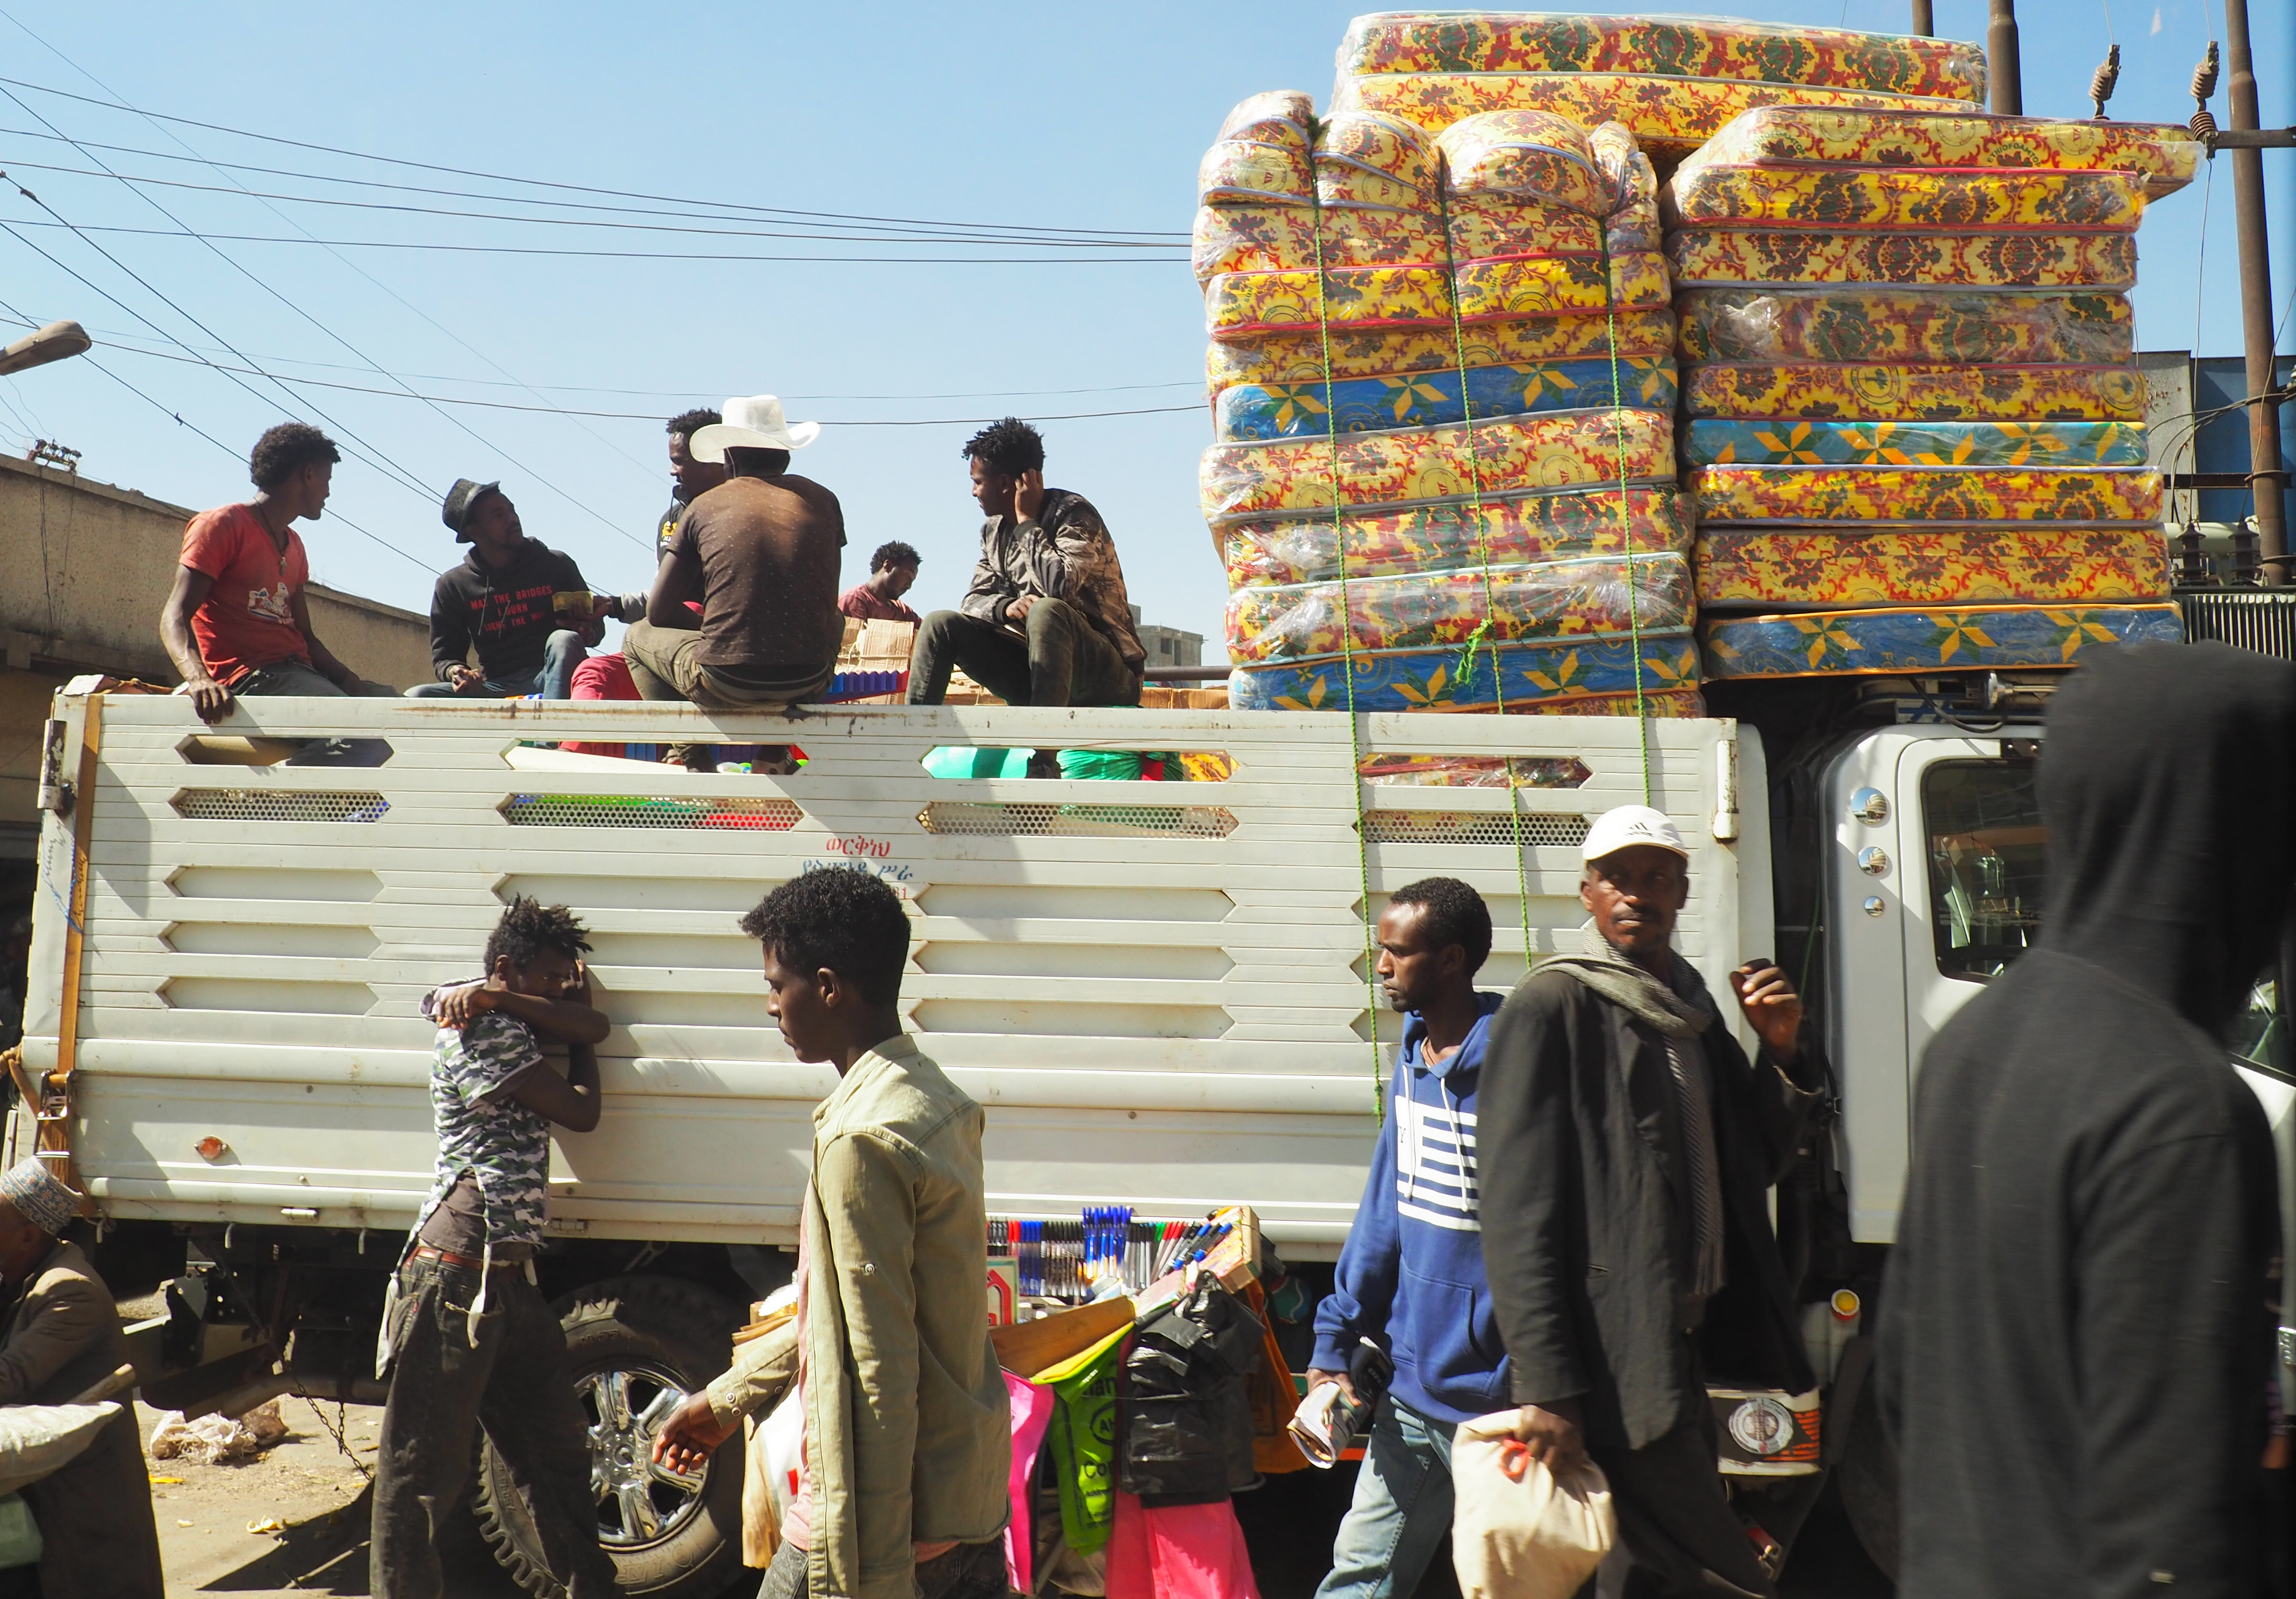 The Addis Mercato is the largest open-air market in Africa.